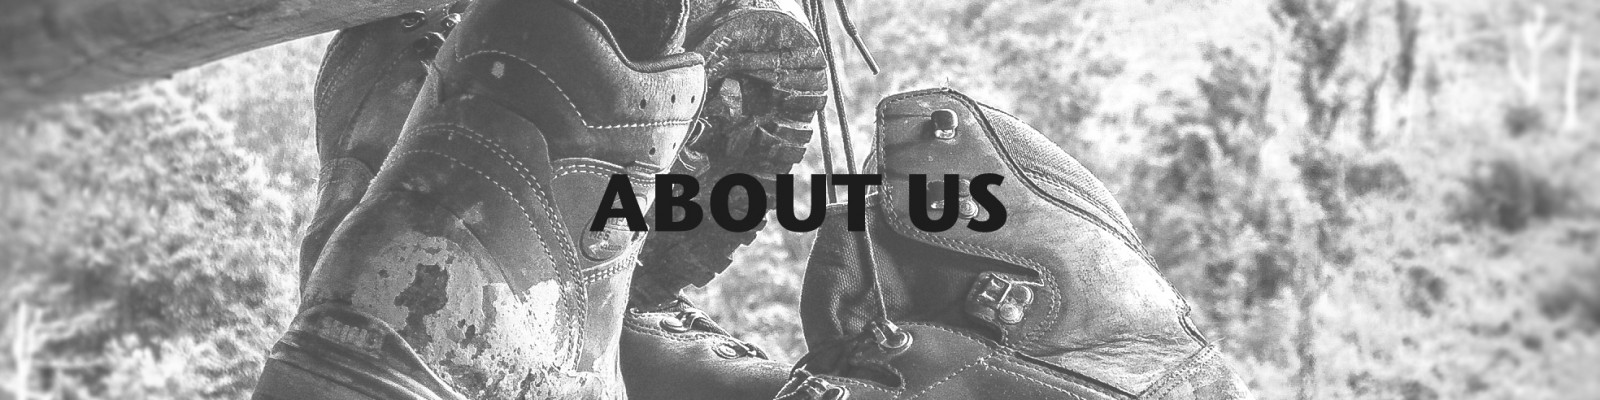 About Us - Our goals and belief